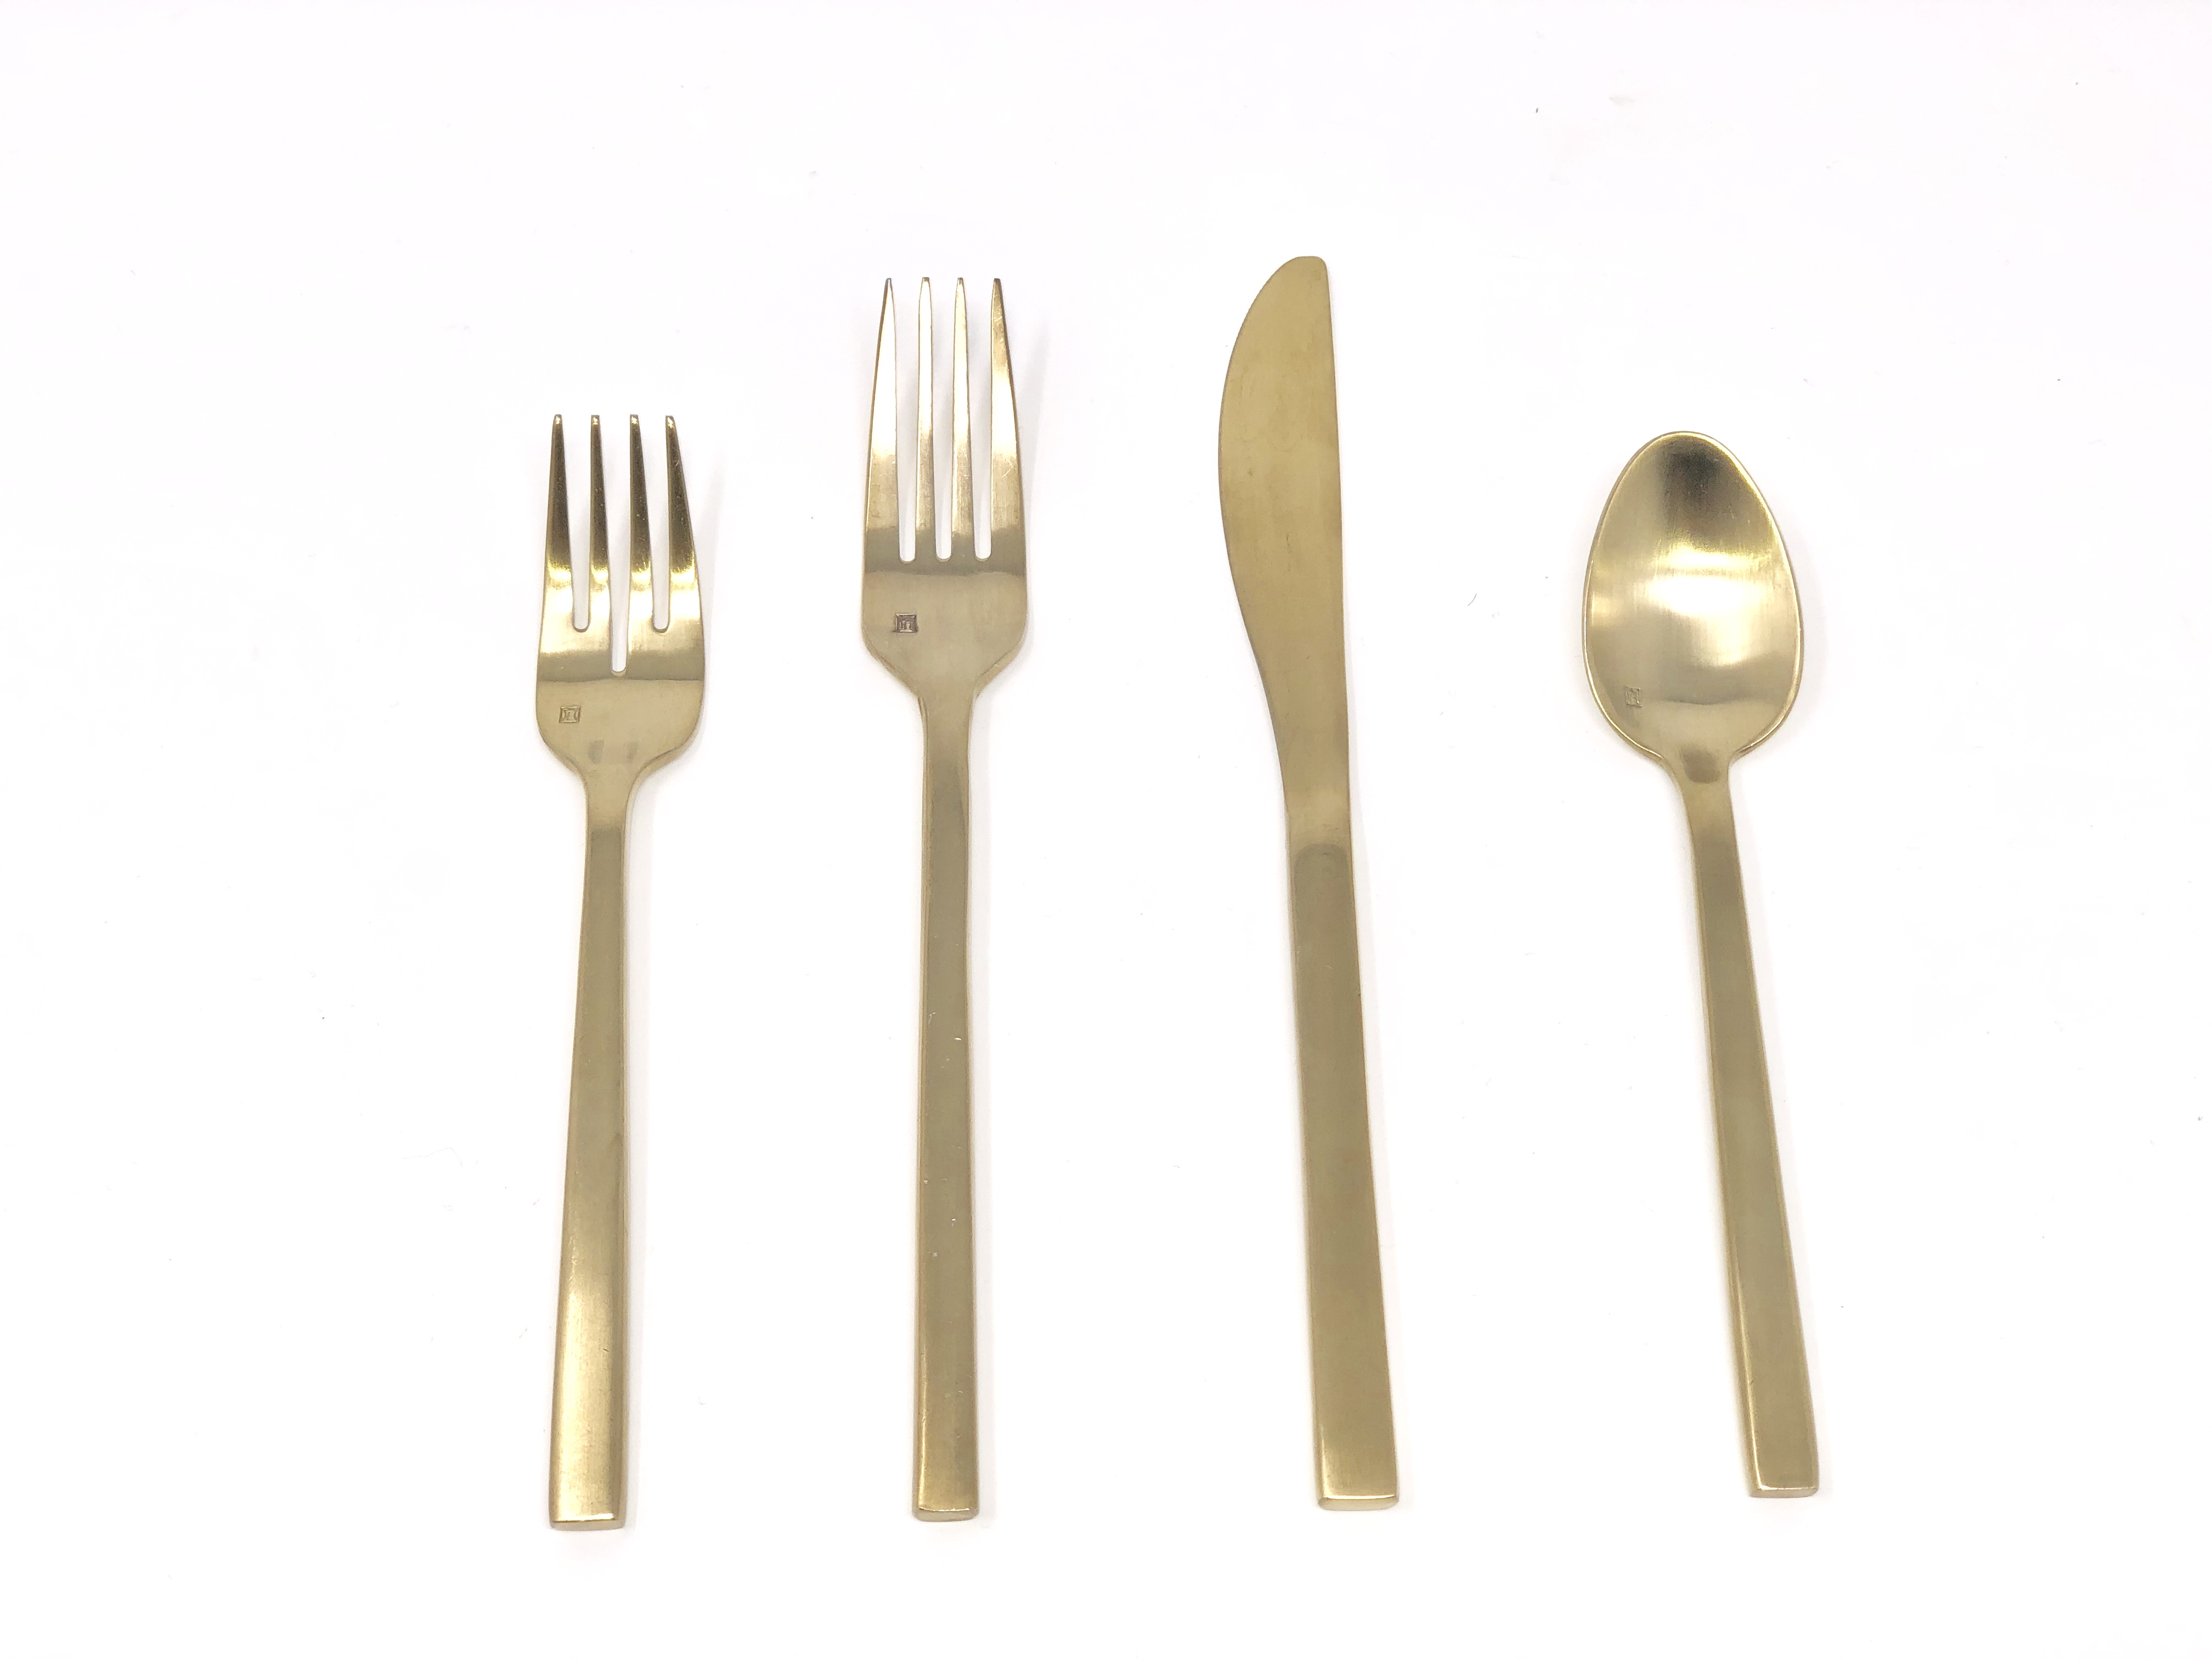 Stunning Gold Galileo Brushed Silverware - Flatware - Tablescape